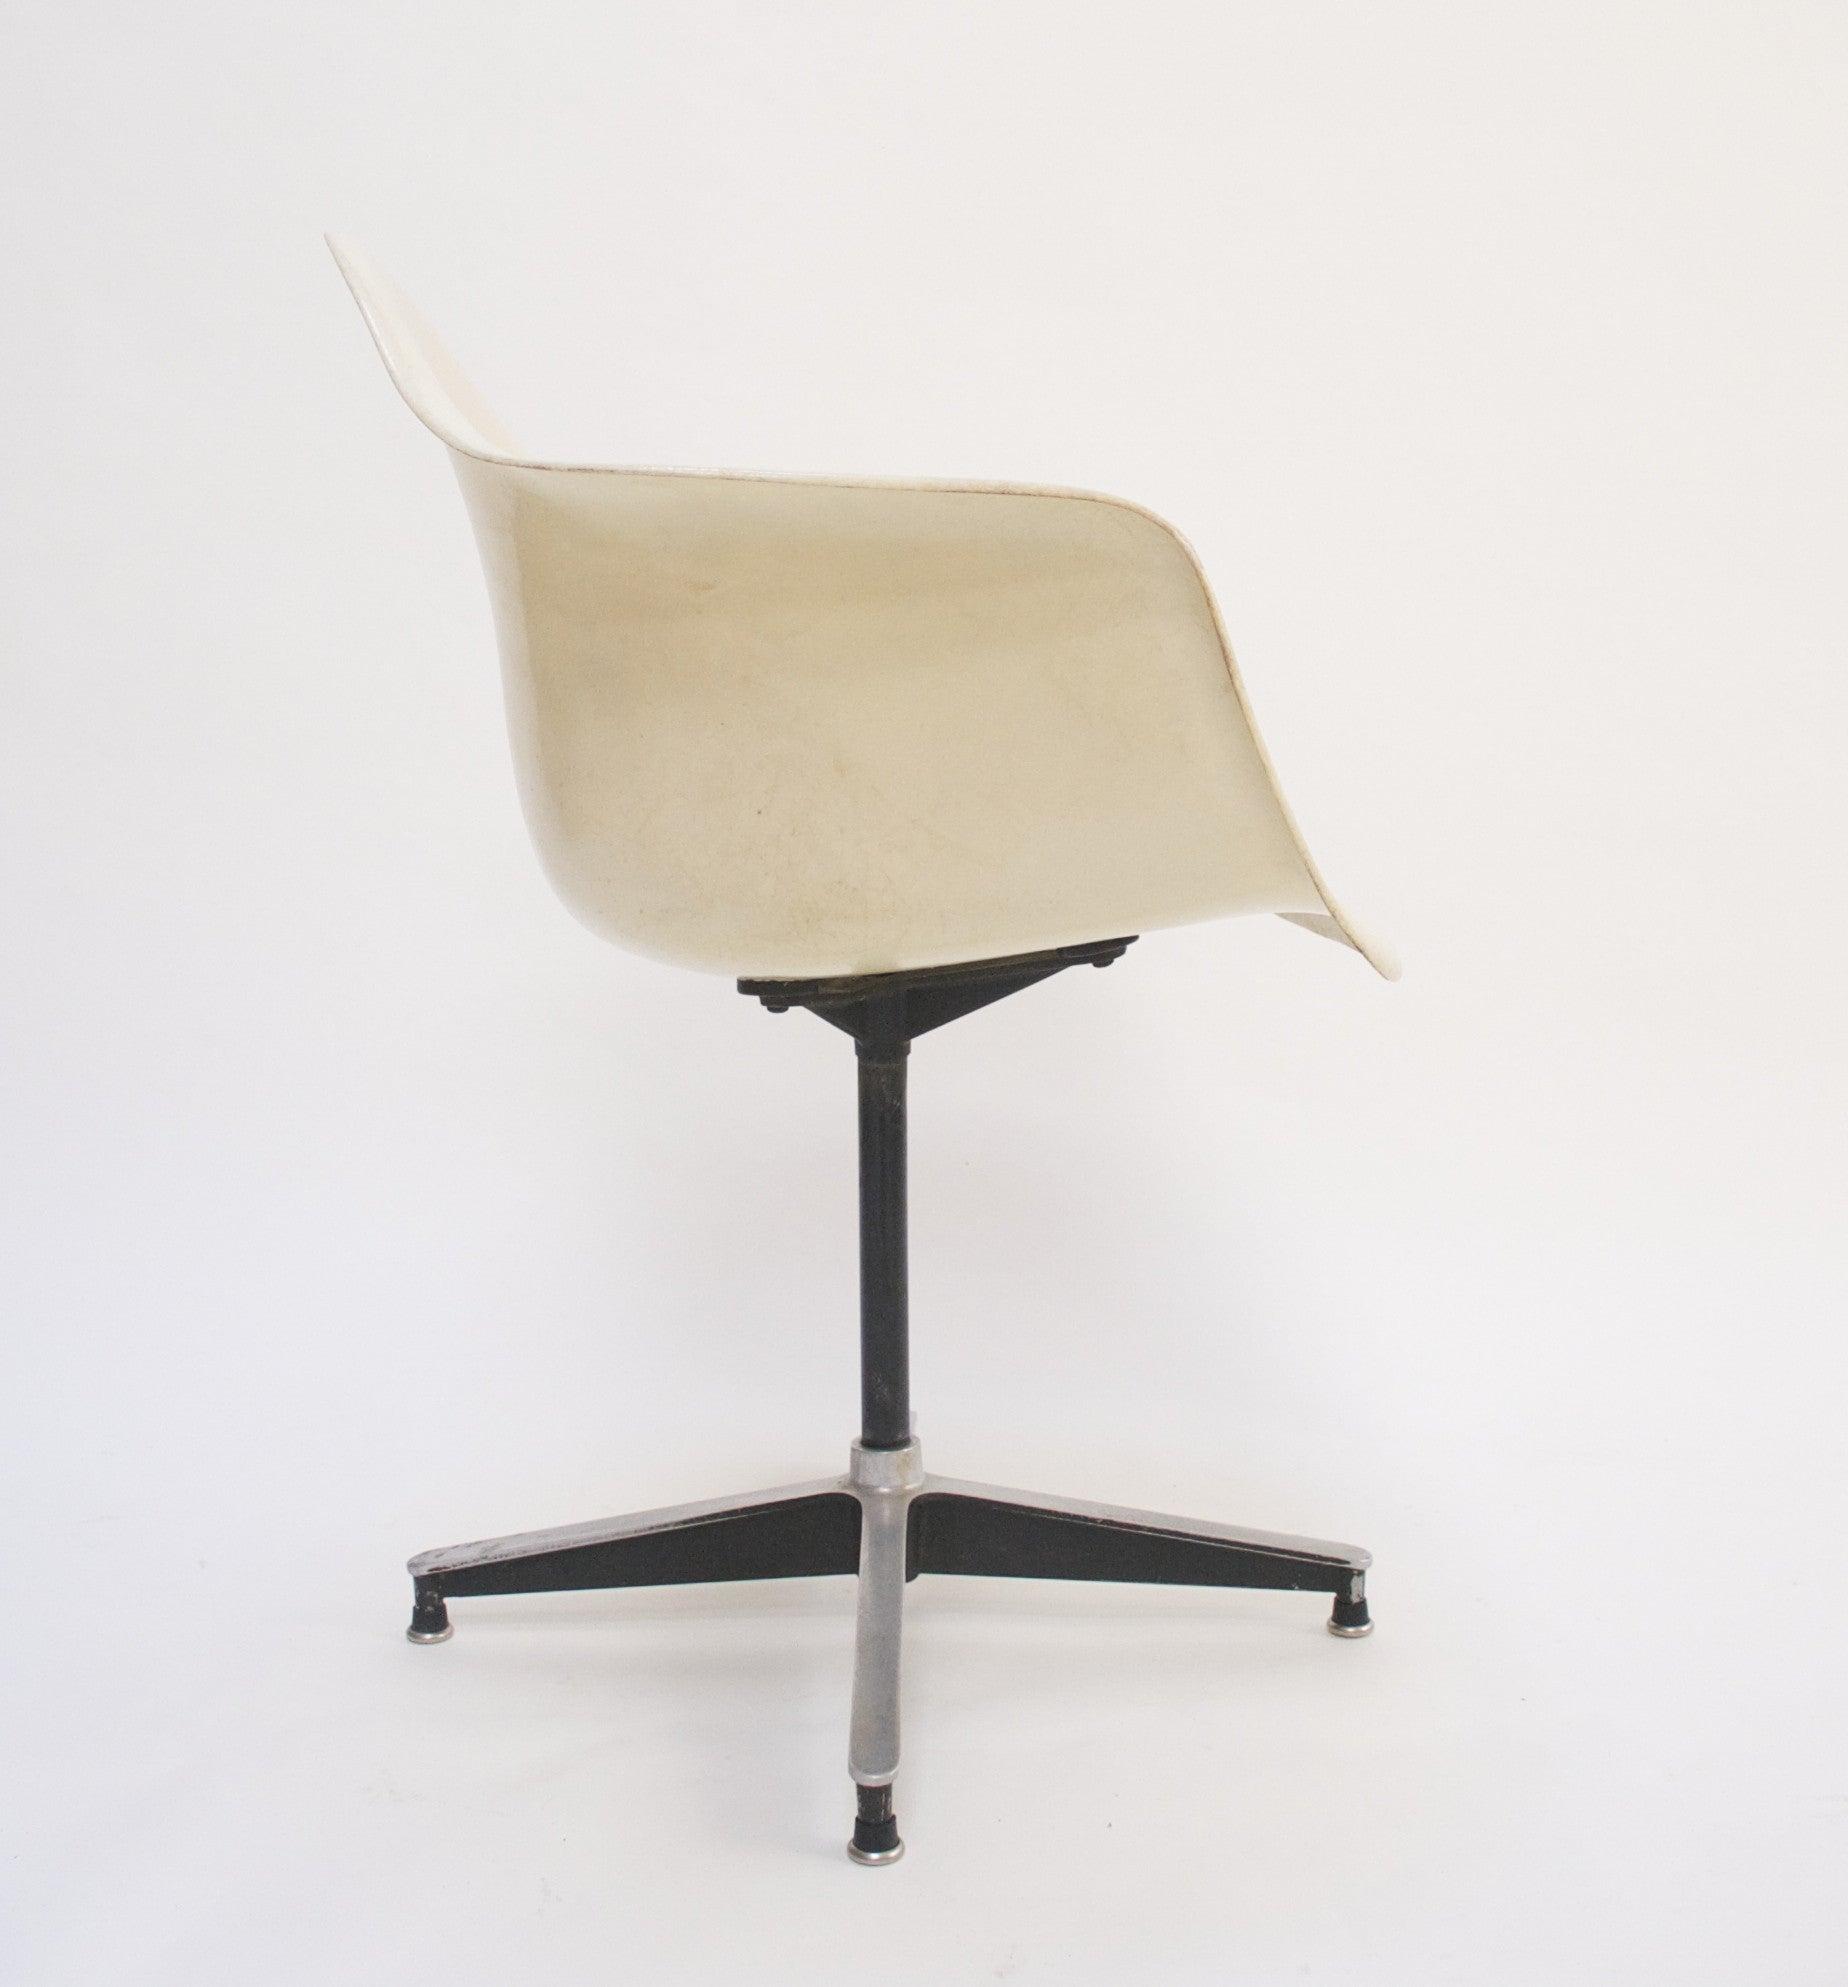 SOLD Eames Herman Miller Ivory Fiberglass Shell Chair Rare Base Arm Shell 1955 PSC